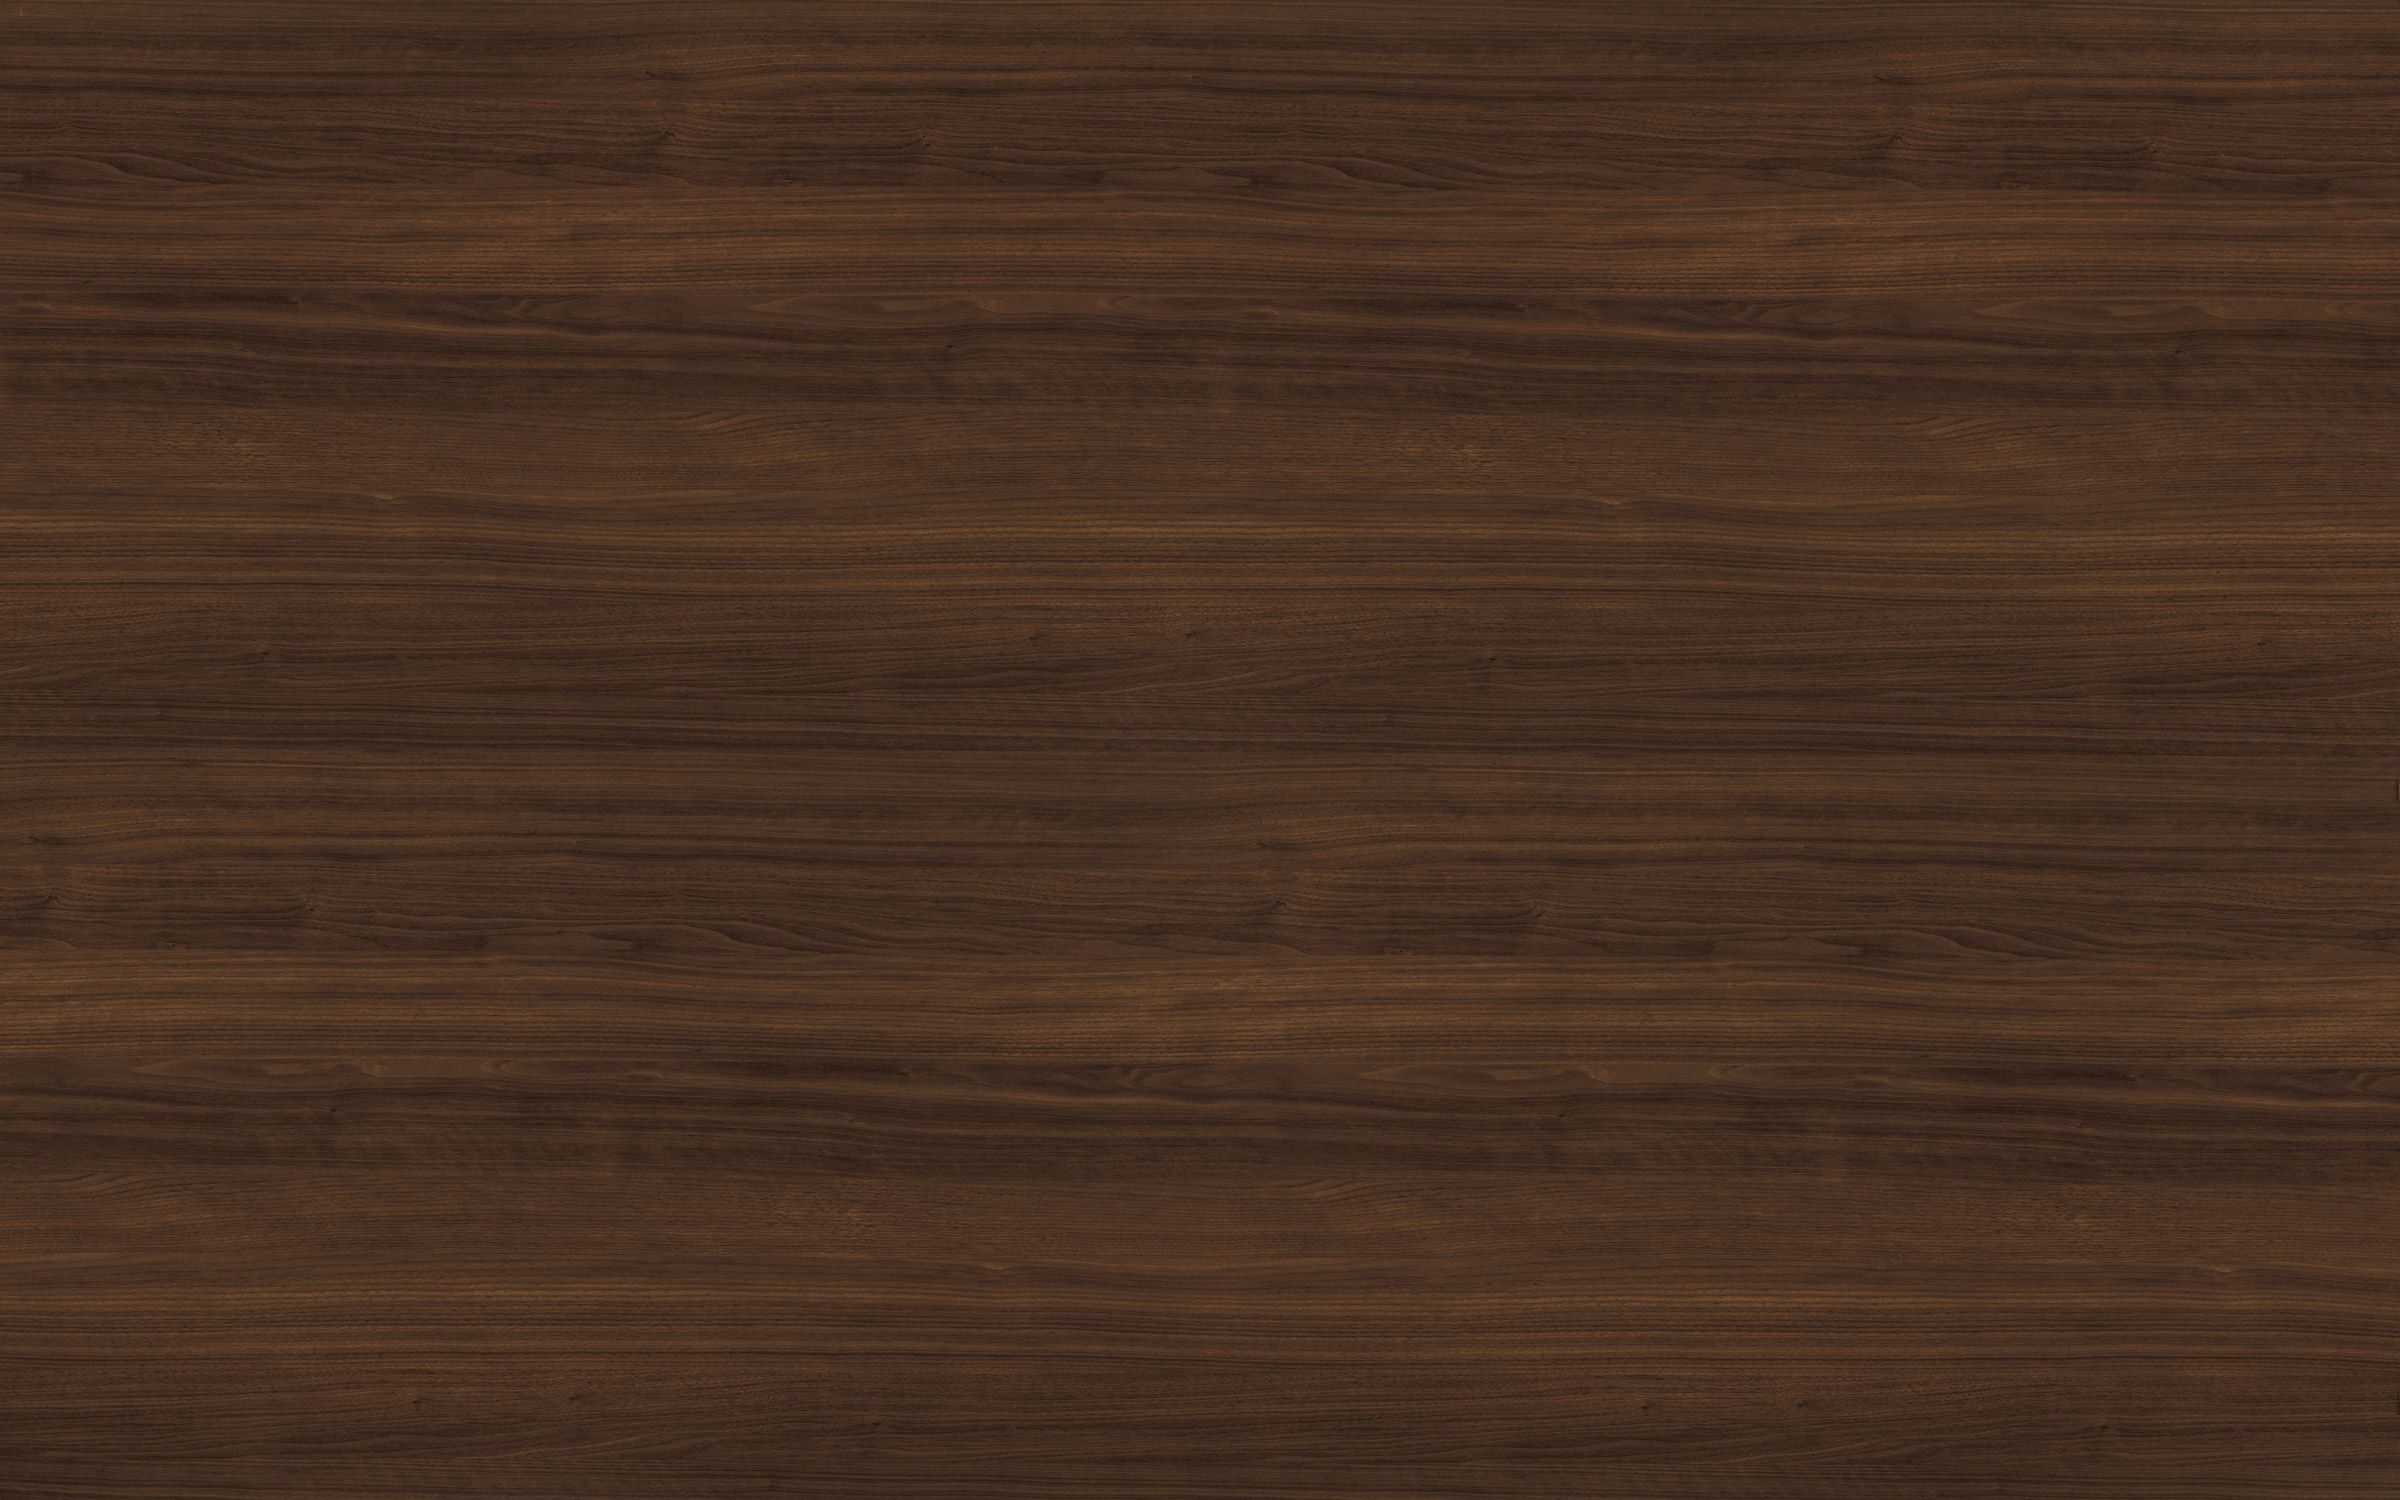 Walnut Veneer Texture Seamless Seamlessly As Vologda